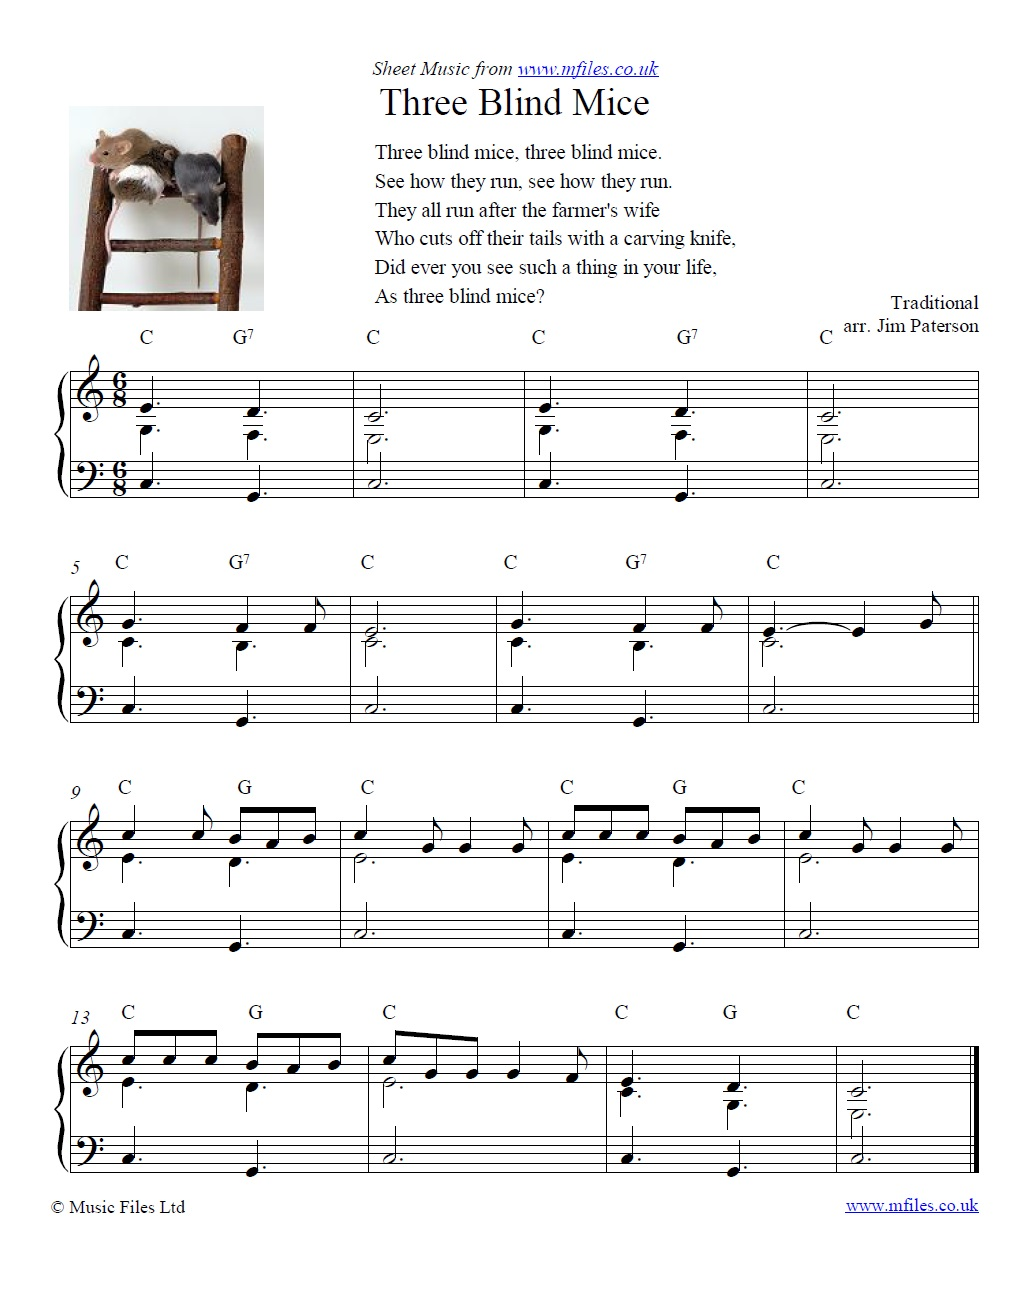 Three Blind Mice for piano - sheet music 1st page